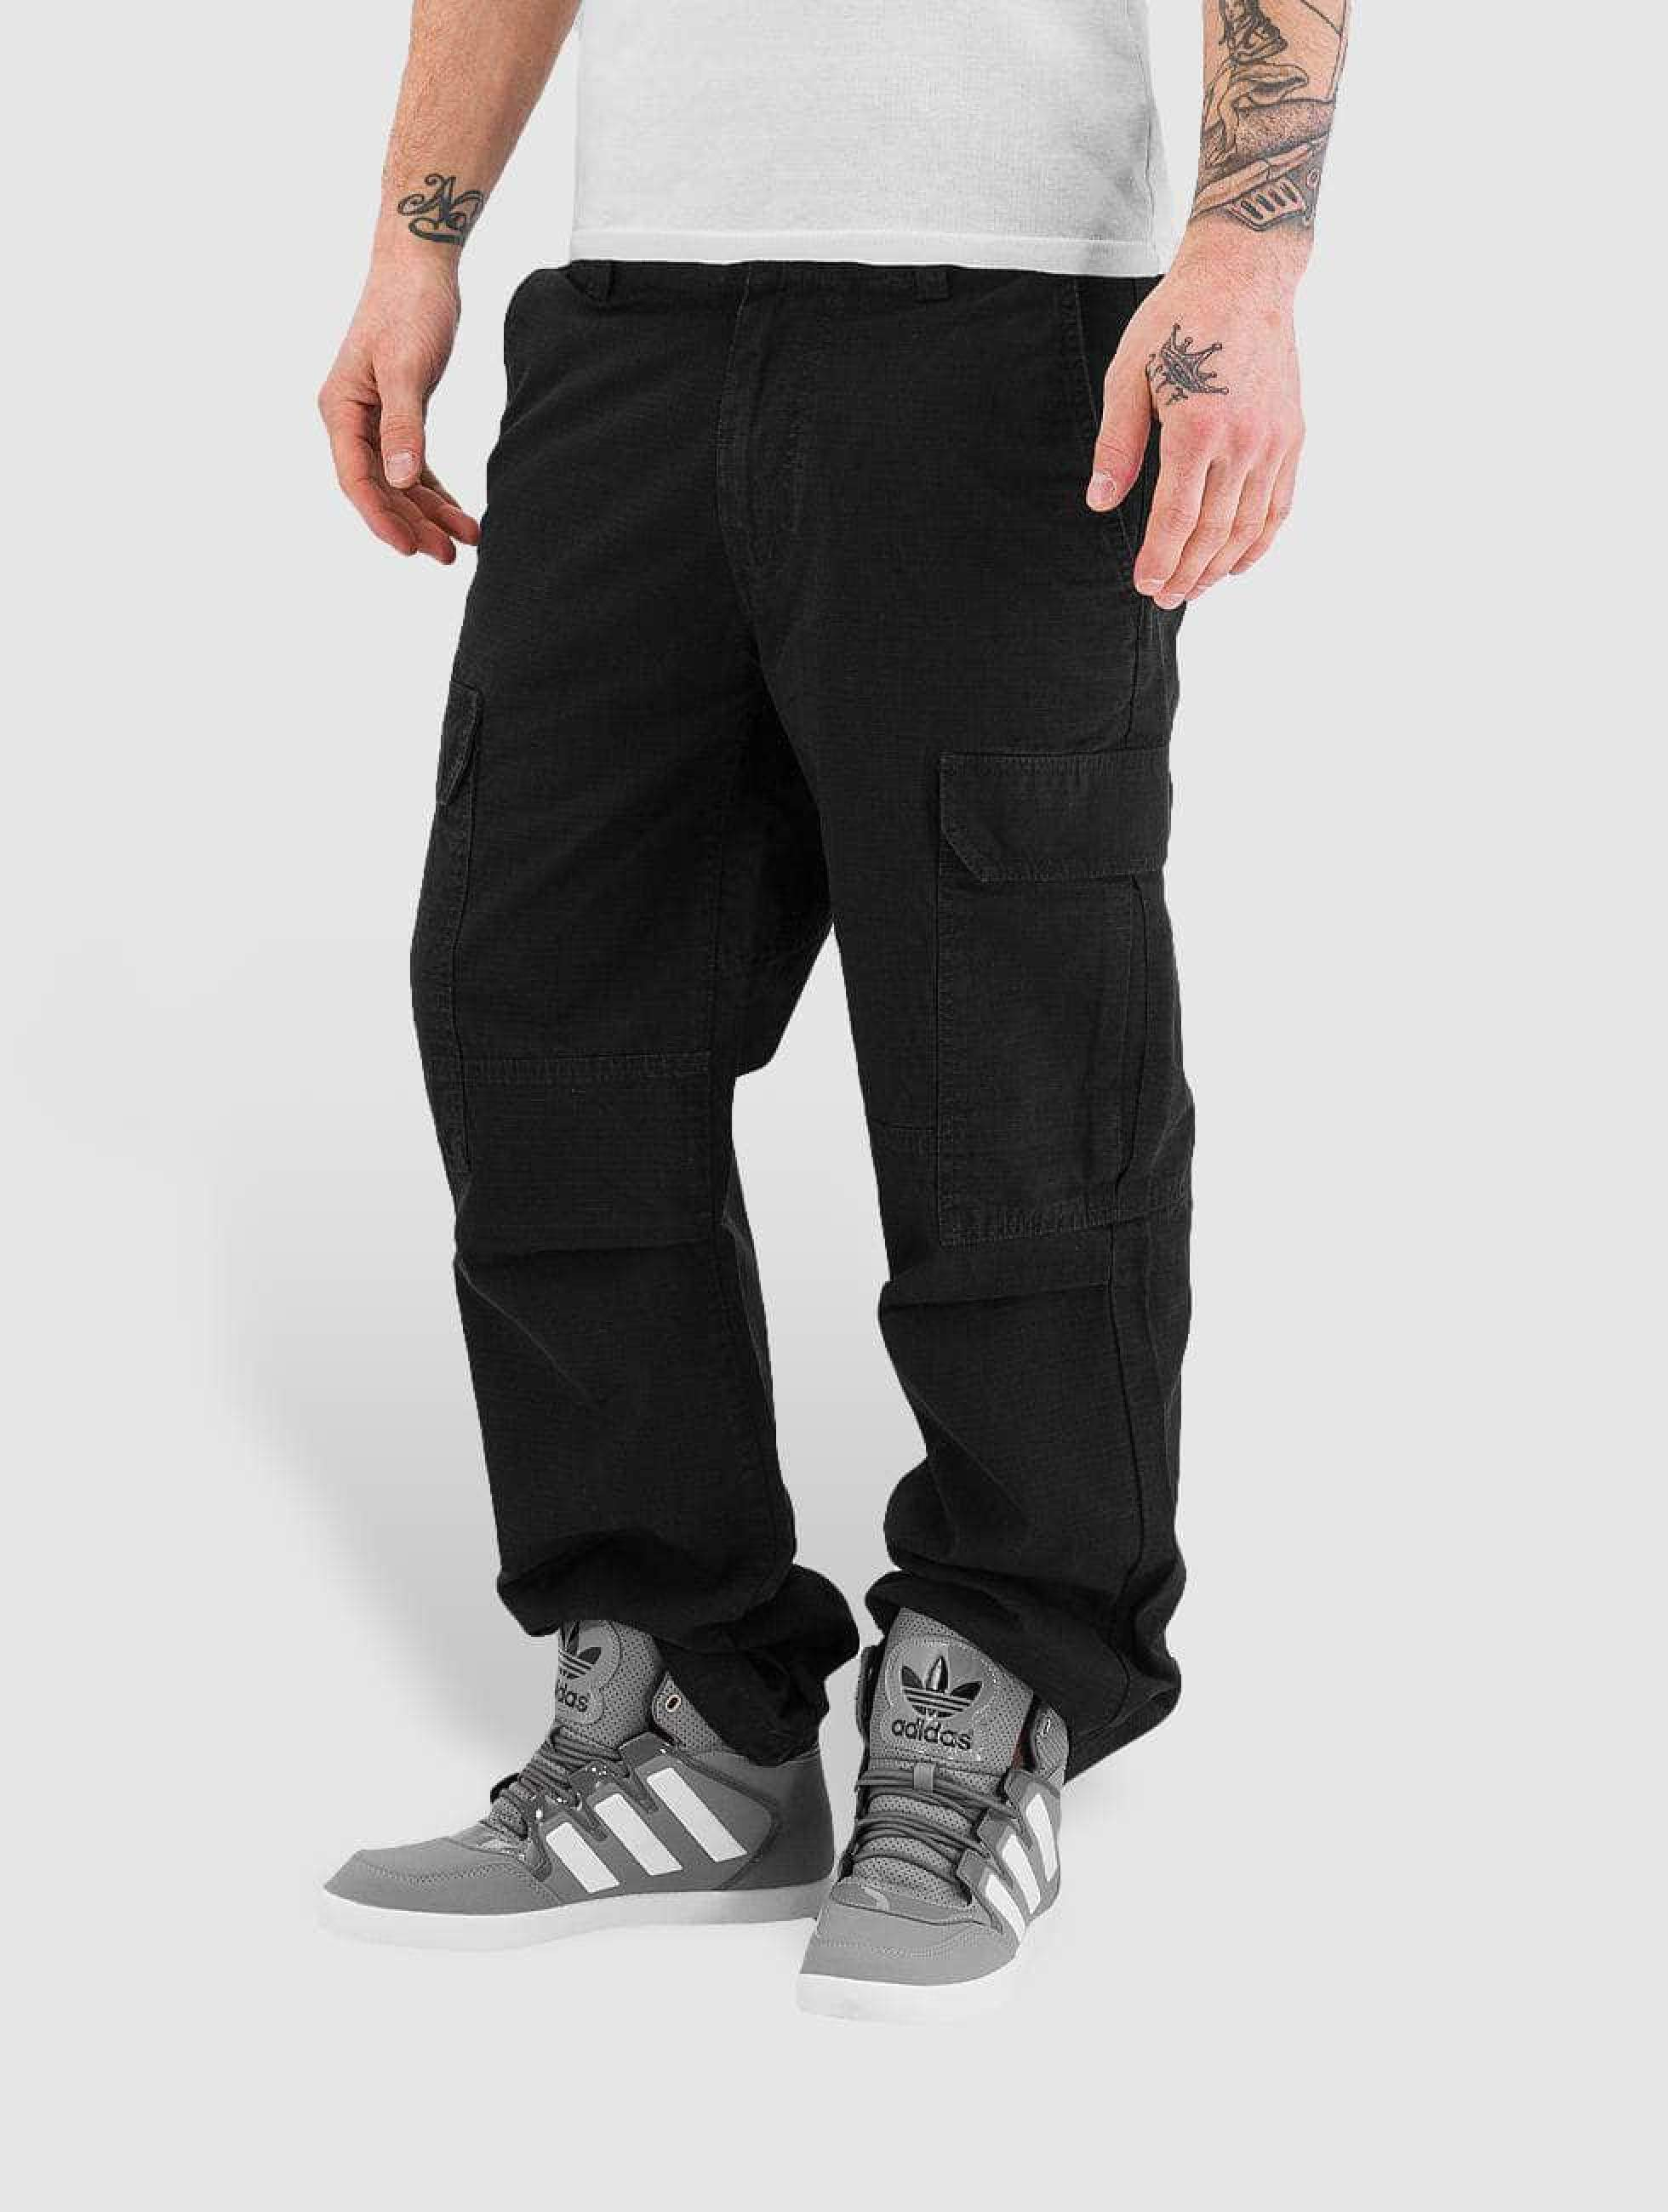 schnelle Farbe kinder tolle Auswahl Dickies New York Cargo Pants Black